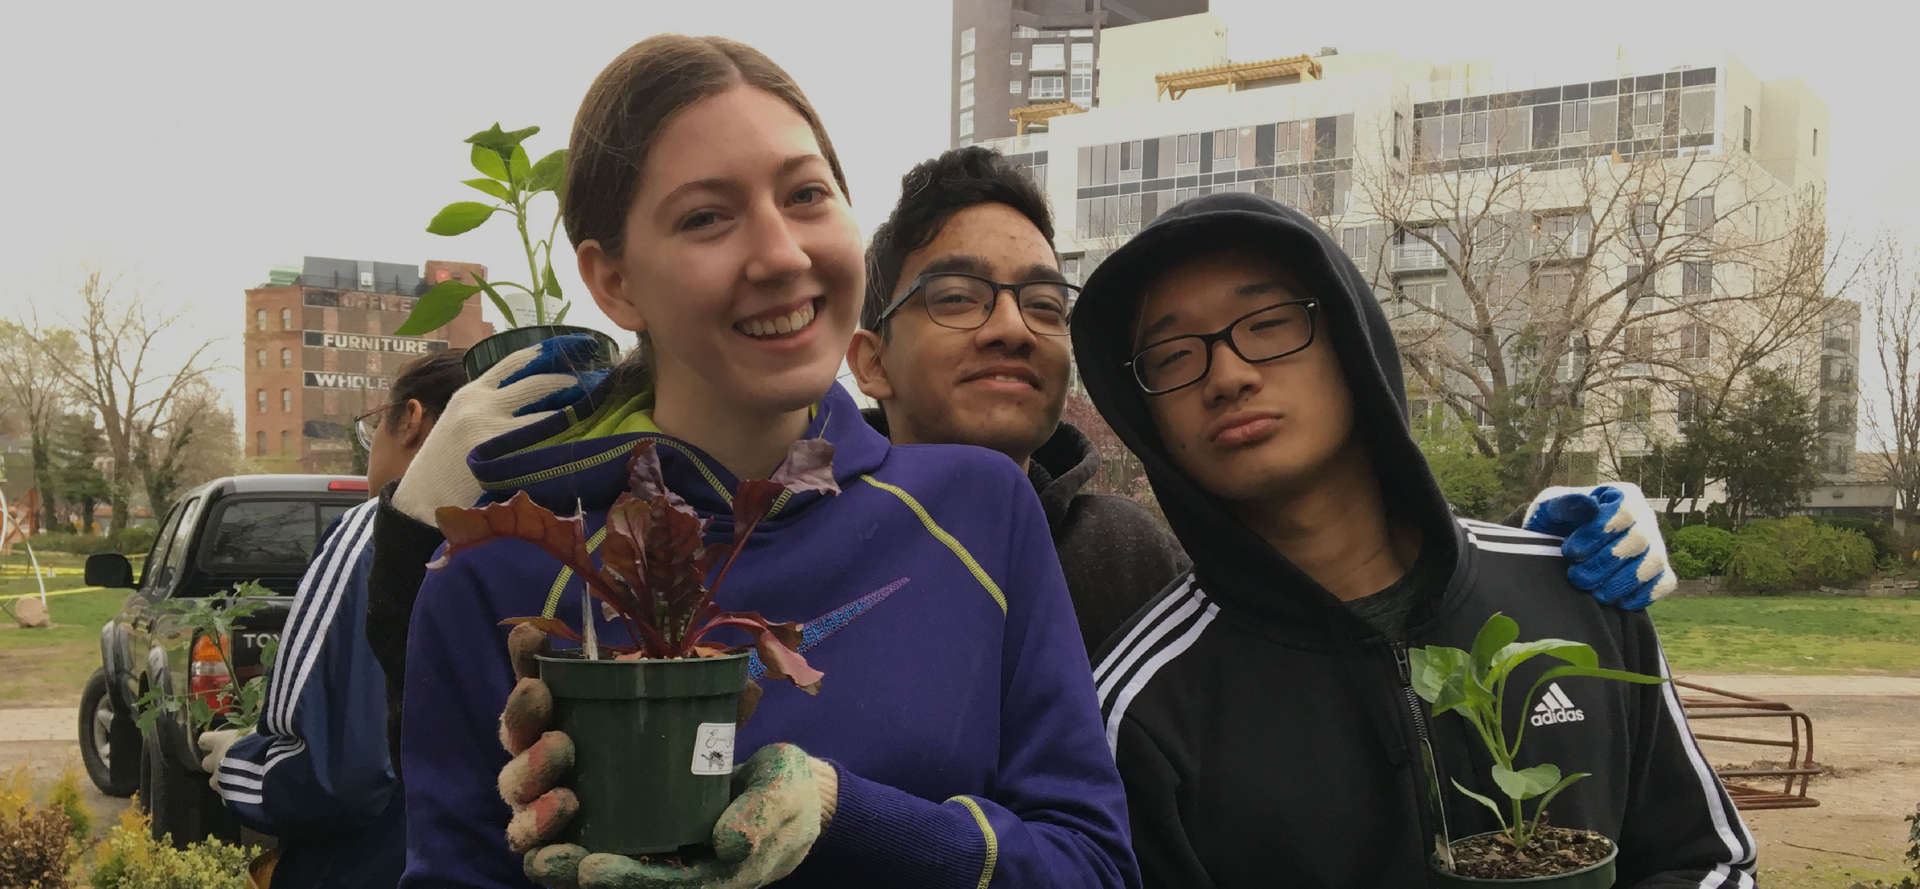 Three students holding plants